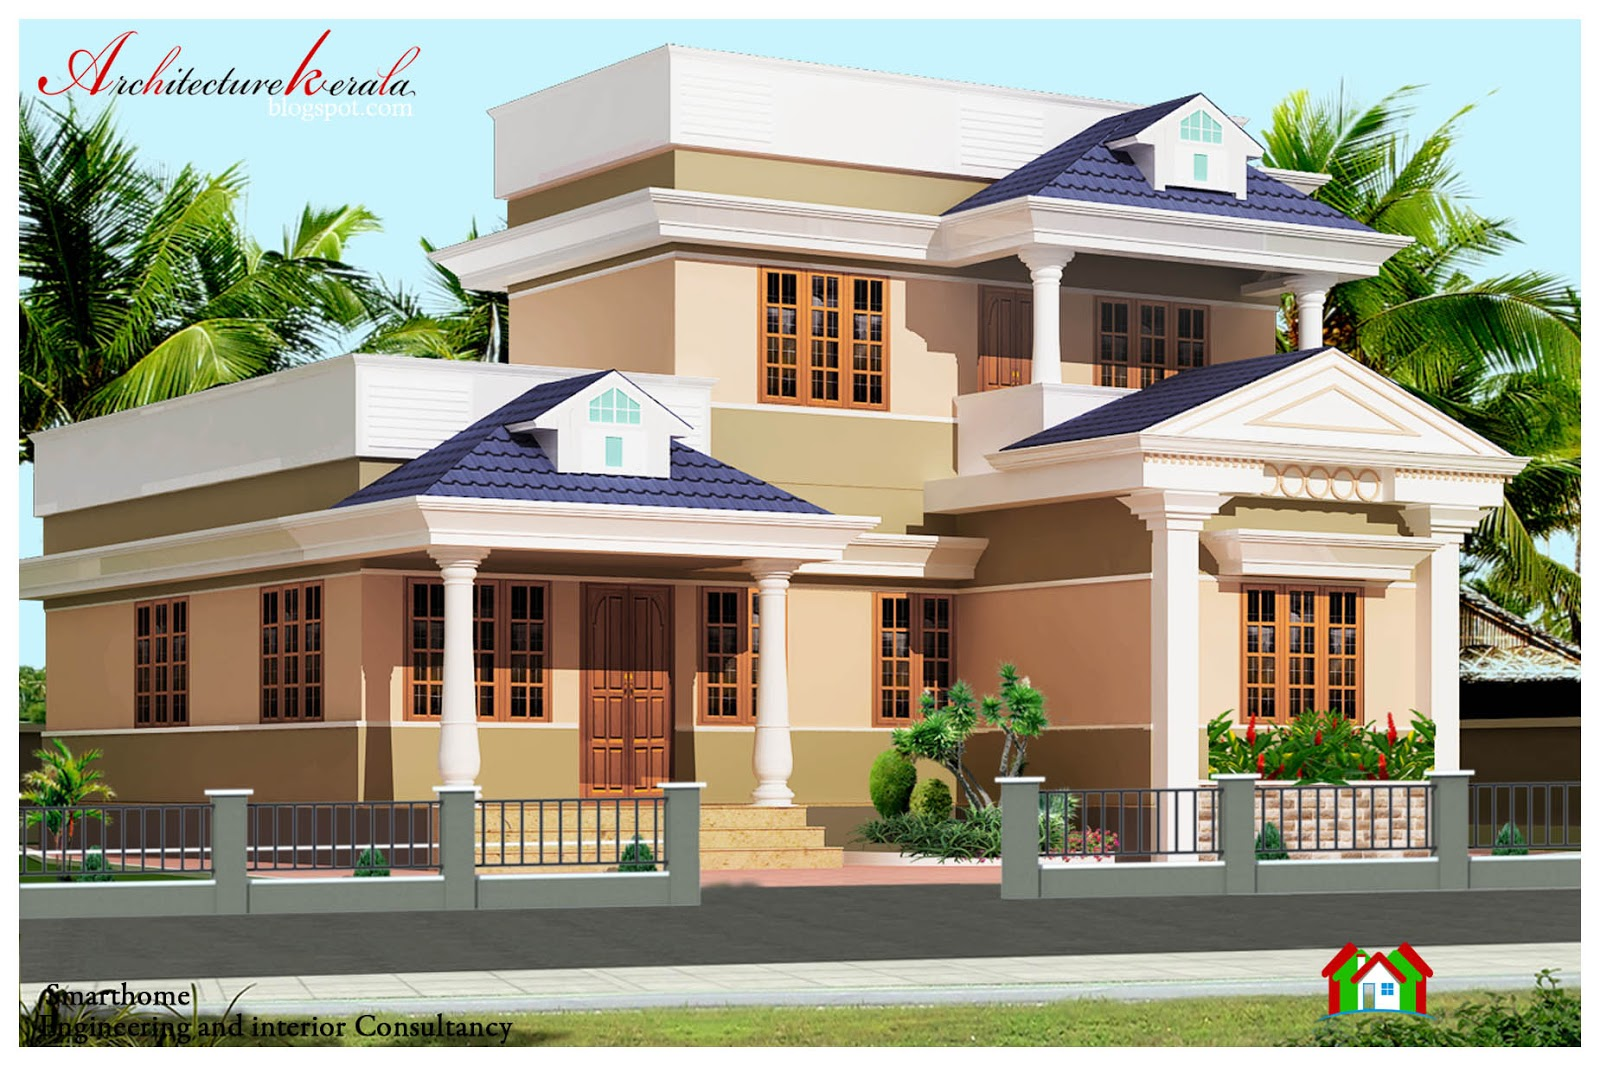 Architecture kerala 1000 sq ft kerala style house plan for Kerala home plans